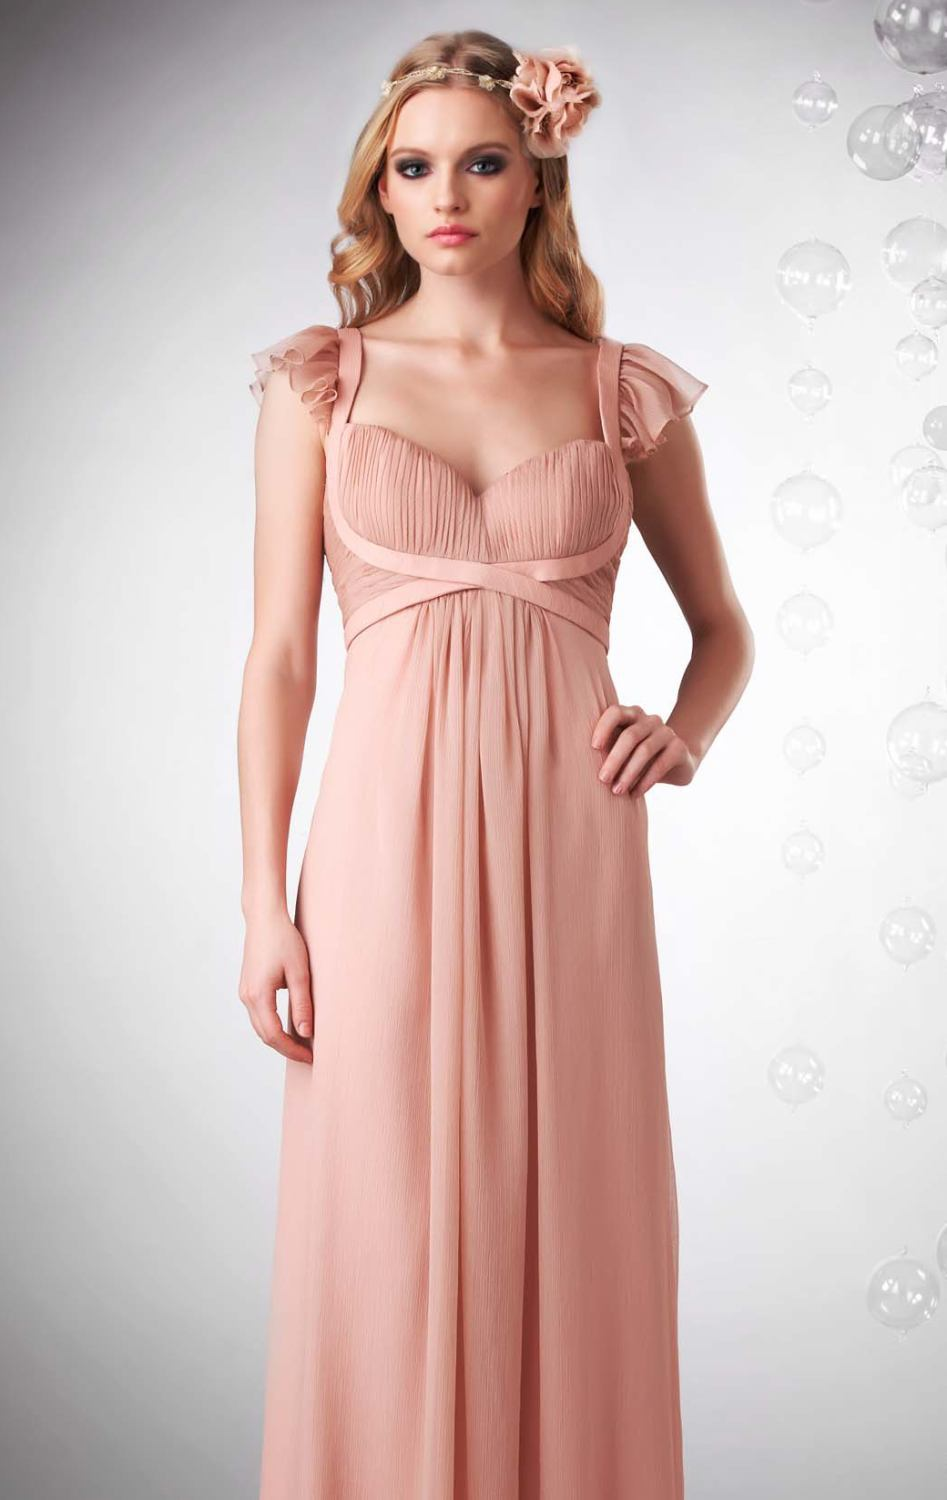 Elegant latest design pink maternity bridesmaid dress patterns elegant latest design pink maternity bridesmaid dress patterns bridesmaid dress for pregnant women with sleeves in bridesmaid dresses from weddings events ombrellifo Gallery